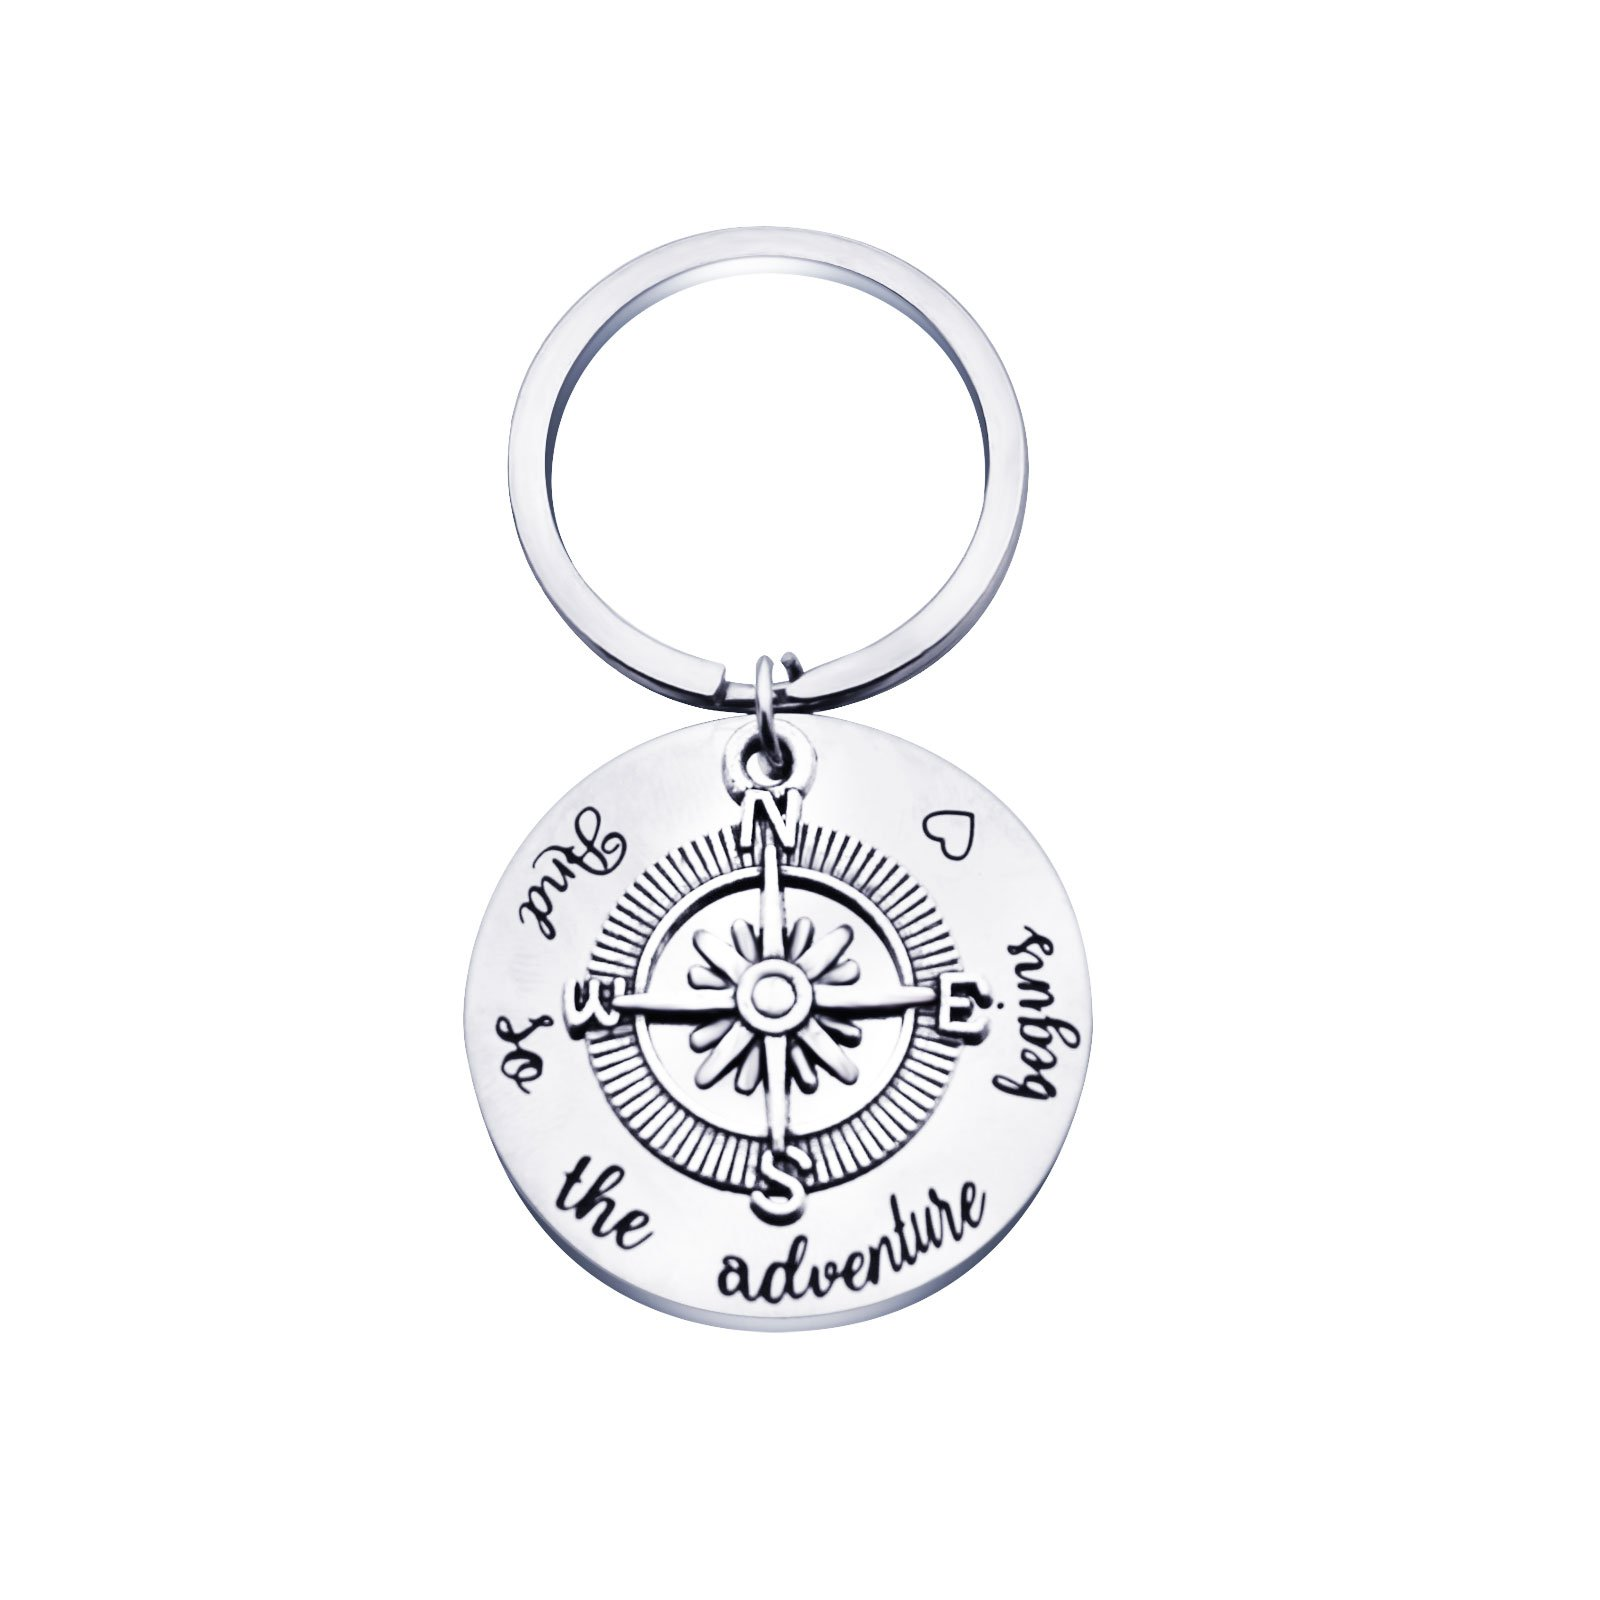 Back to School Gift and So The Adventure Begins Compass Keychain Inspirational Keychain Inspirational Jewelry Inspirational Gift for Women Birthday Gift for Daughter Retirement Gift(Adventure Begins)